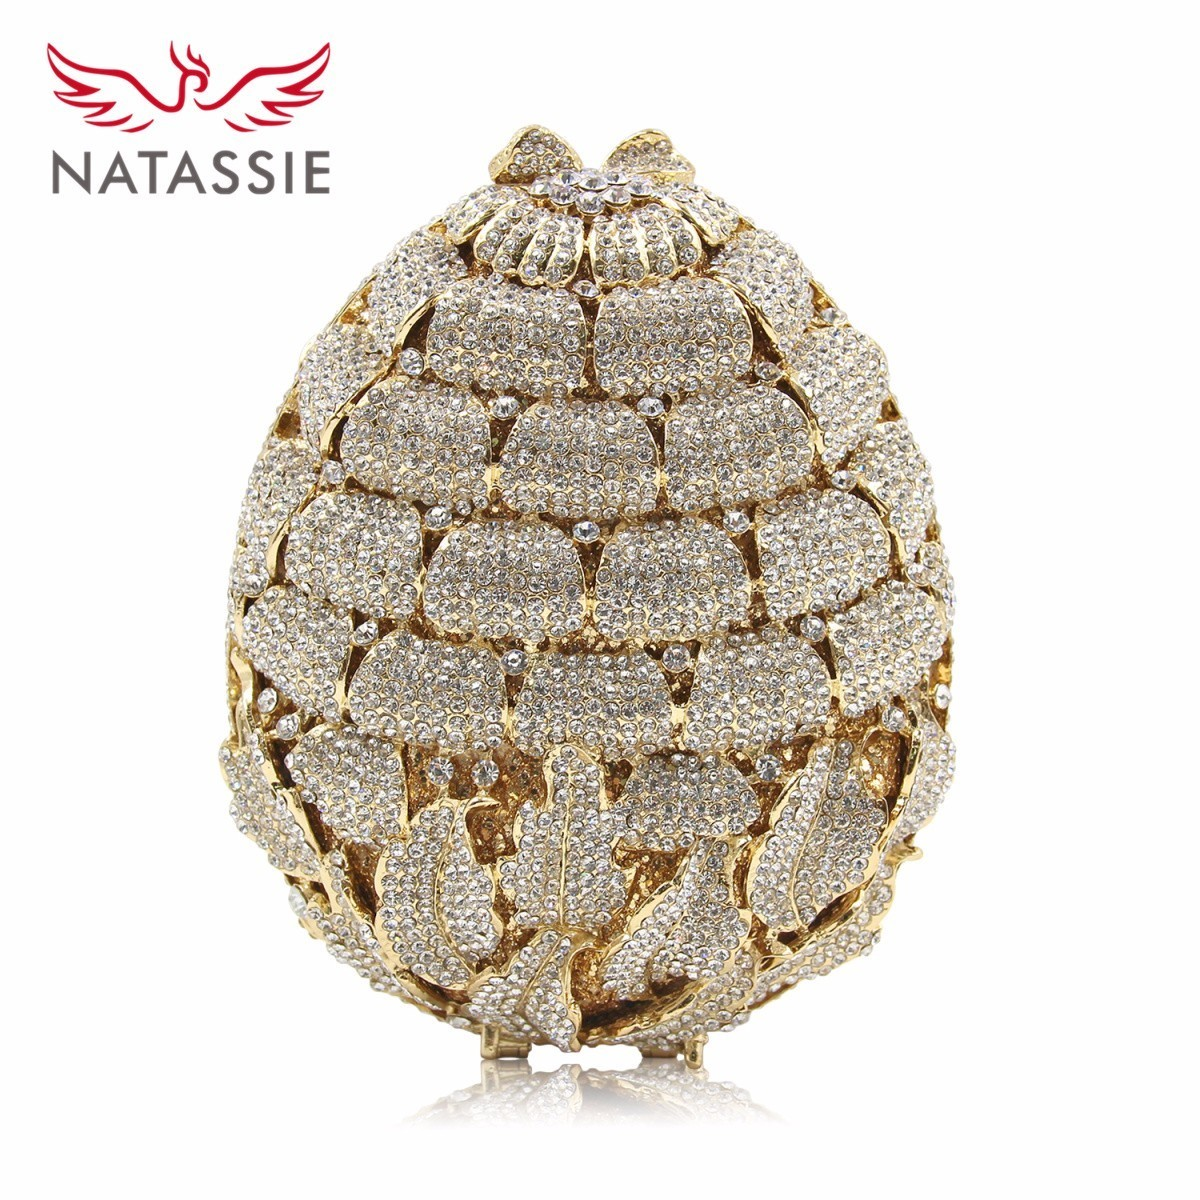 Natassie New Design Ladies Luxury Flower Crystal Evening Bags Women Wedding Clutches Purses Girls Day Clutch Party Bag 2017 new crystal women evening bags luxury diamonds bride wedding party dinner bag handbag handbags purses ladies day clutches